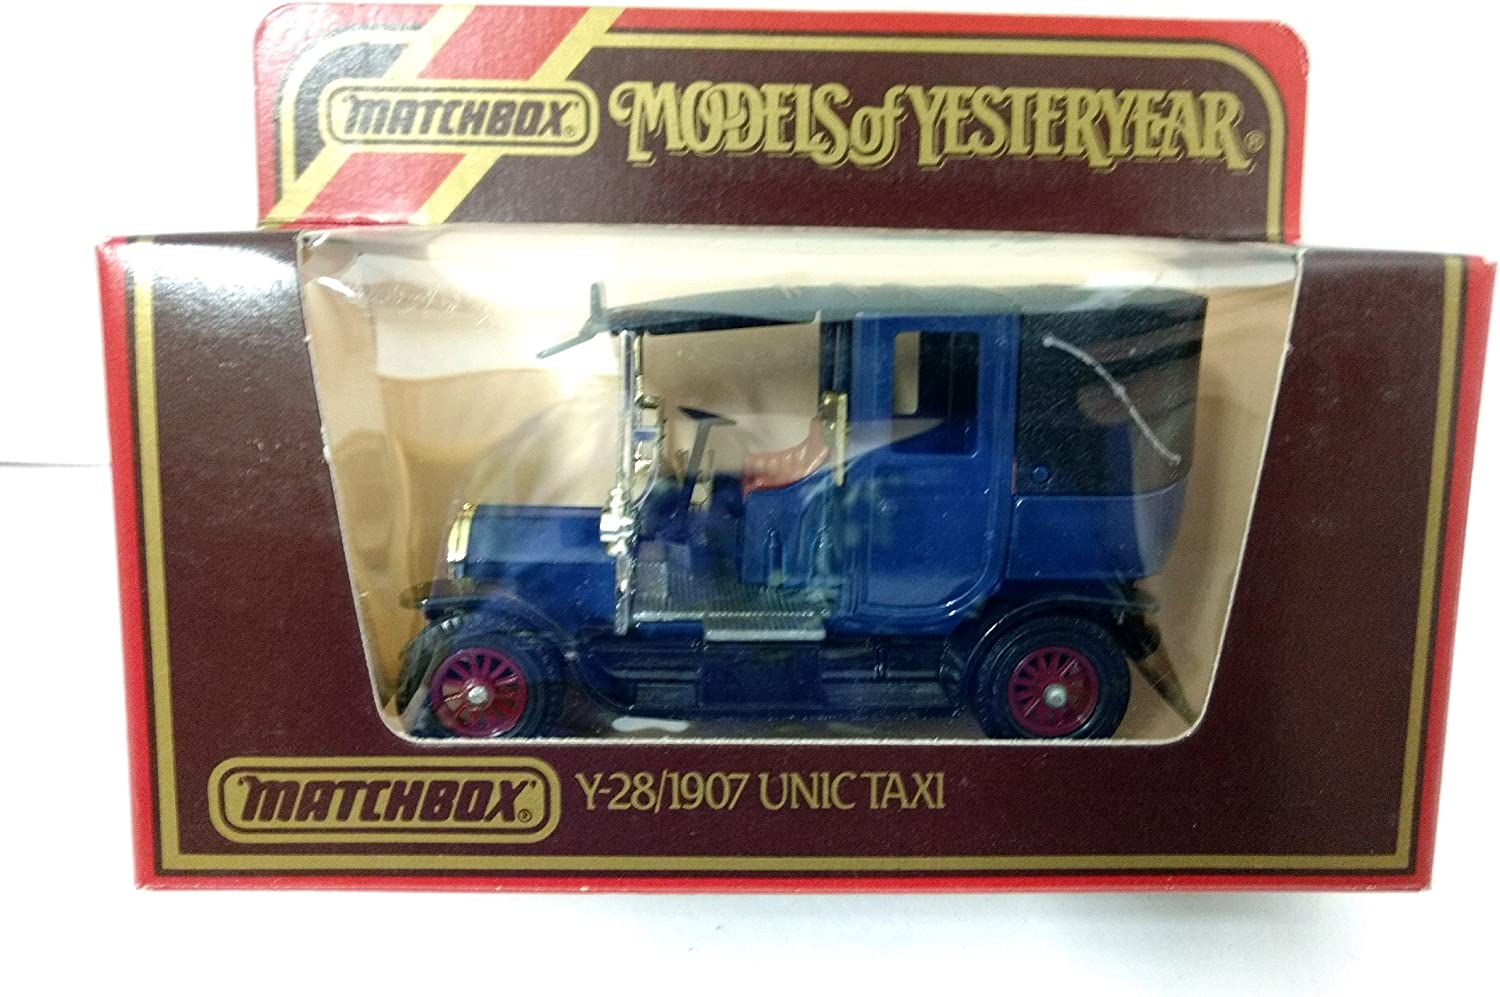 Matchbox Models of Yesteryear Y-28 1907 Unic Taxi